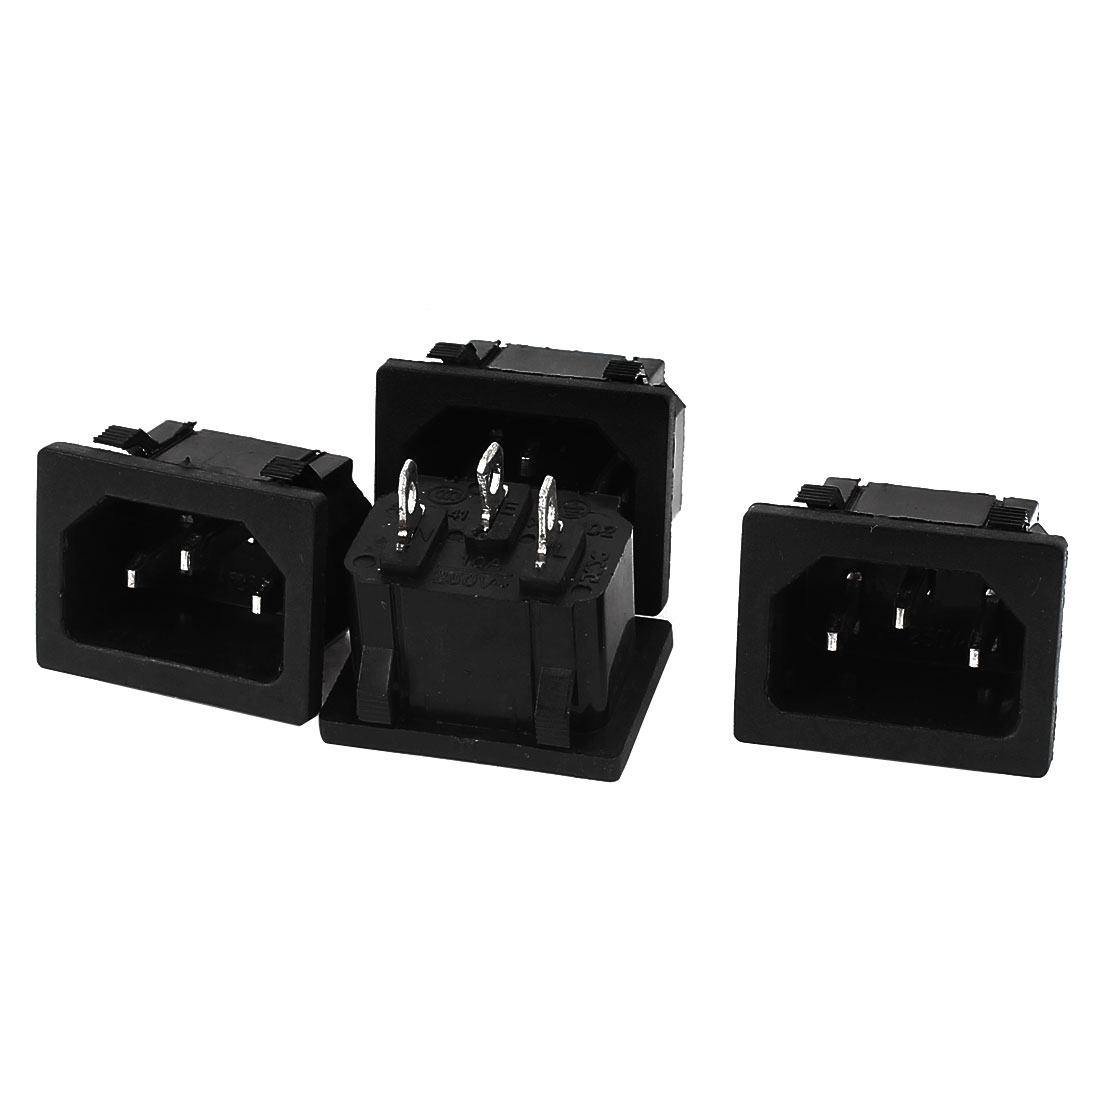 AC 250V 10A 3 Terminal Snap Mount IEC320 C14 Power Socket Adapter 4pcs